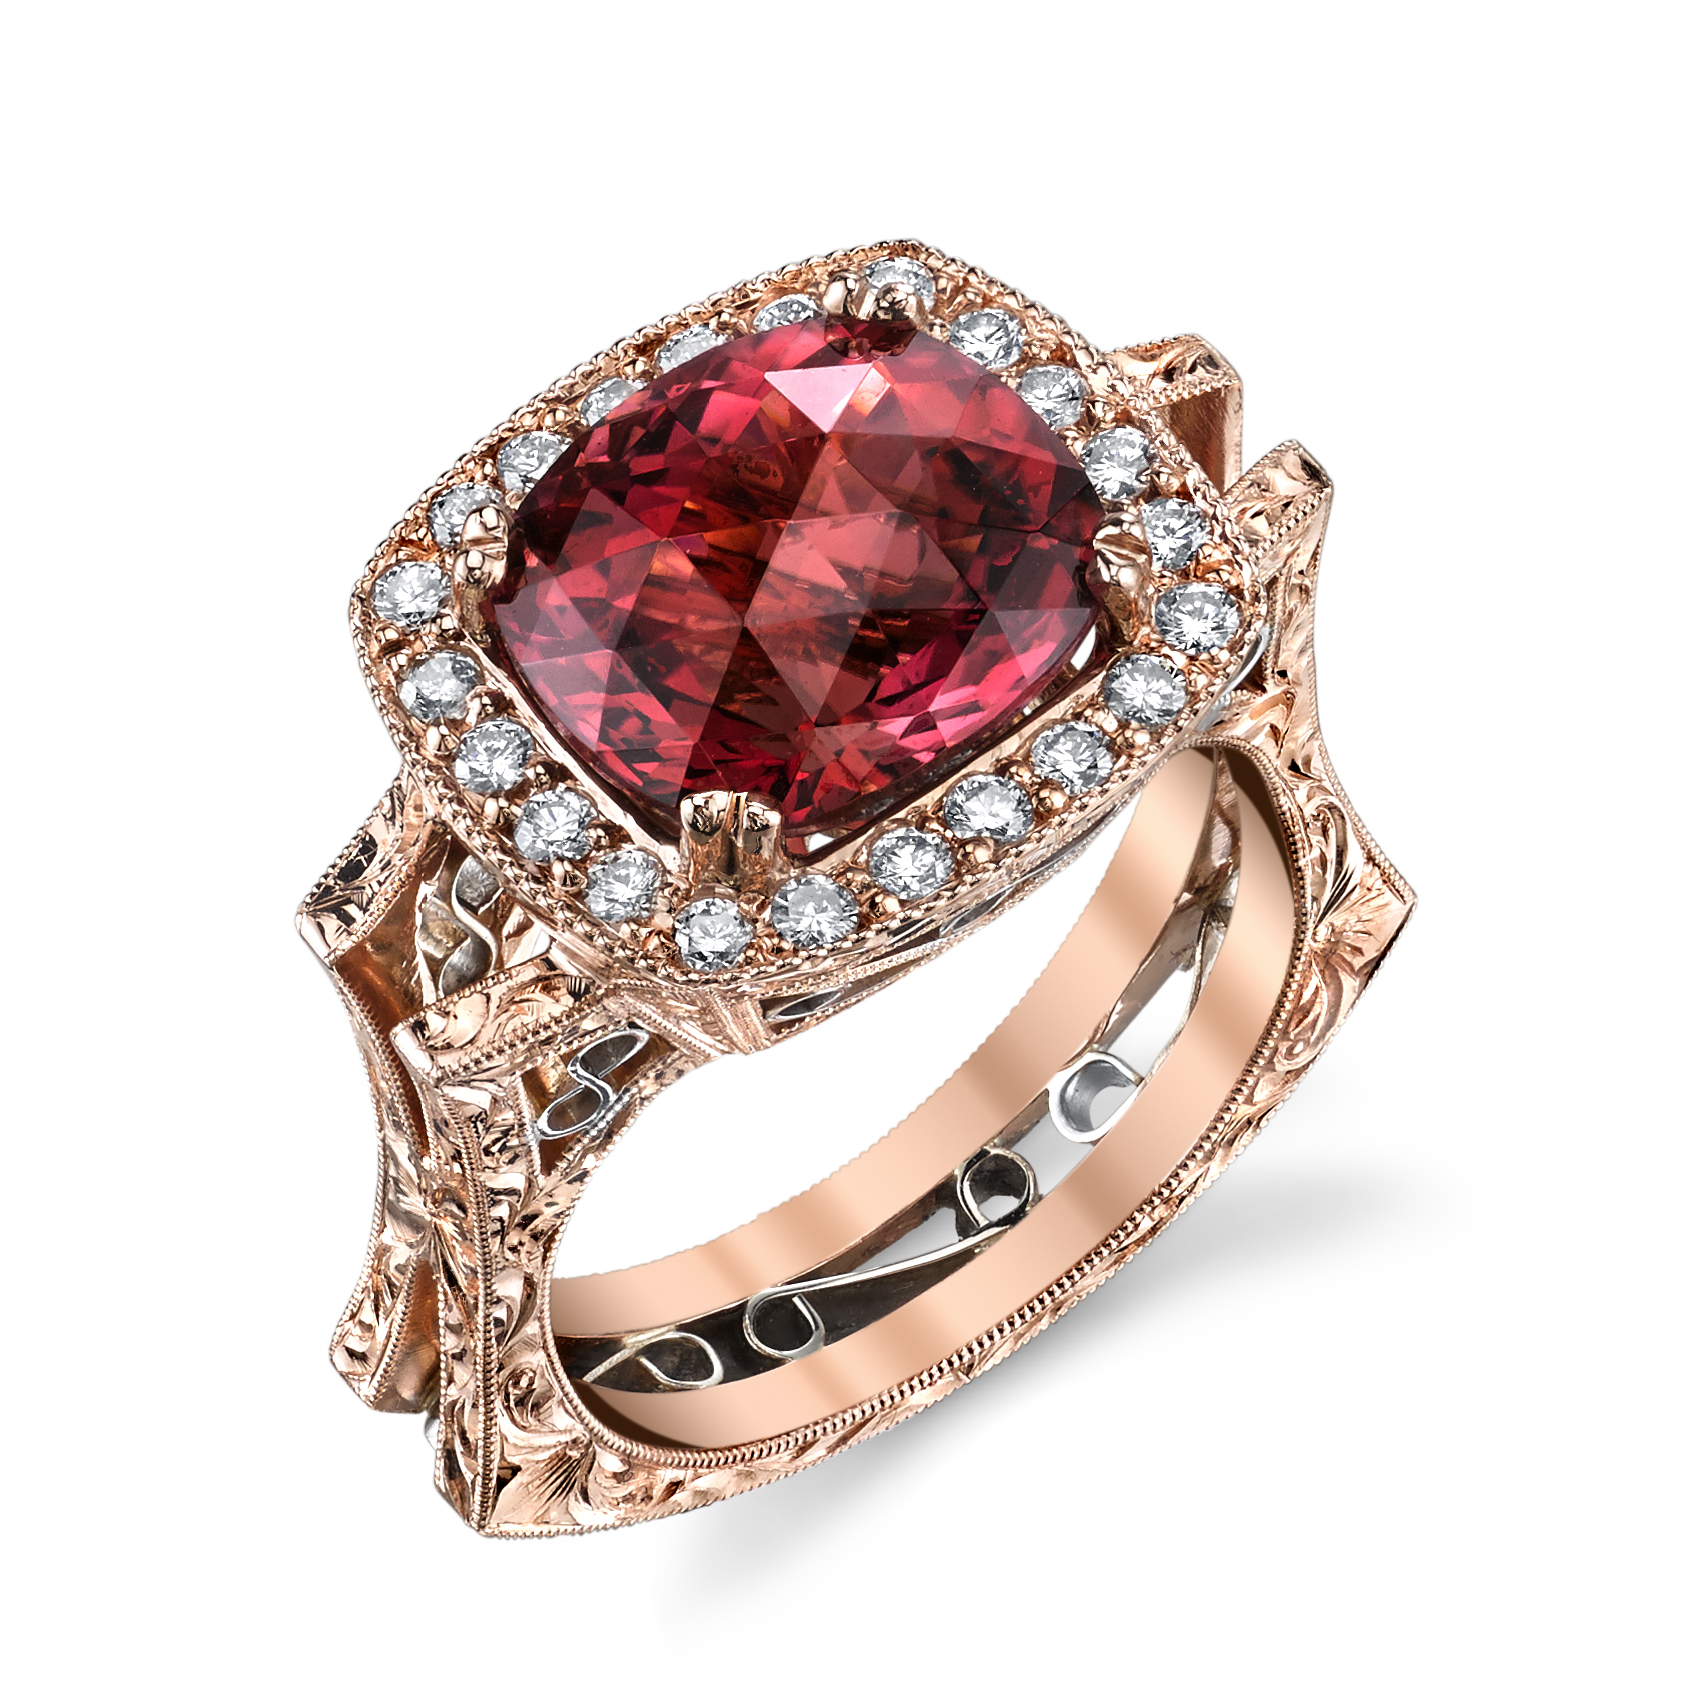 Desert+Rose+Tourmaline+Diamond+Ring.jpg